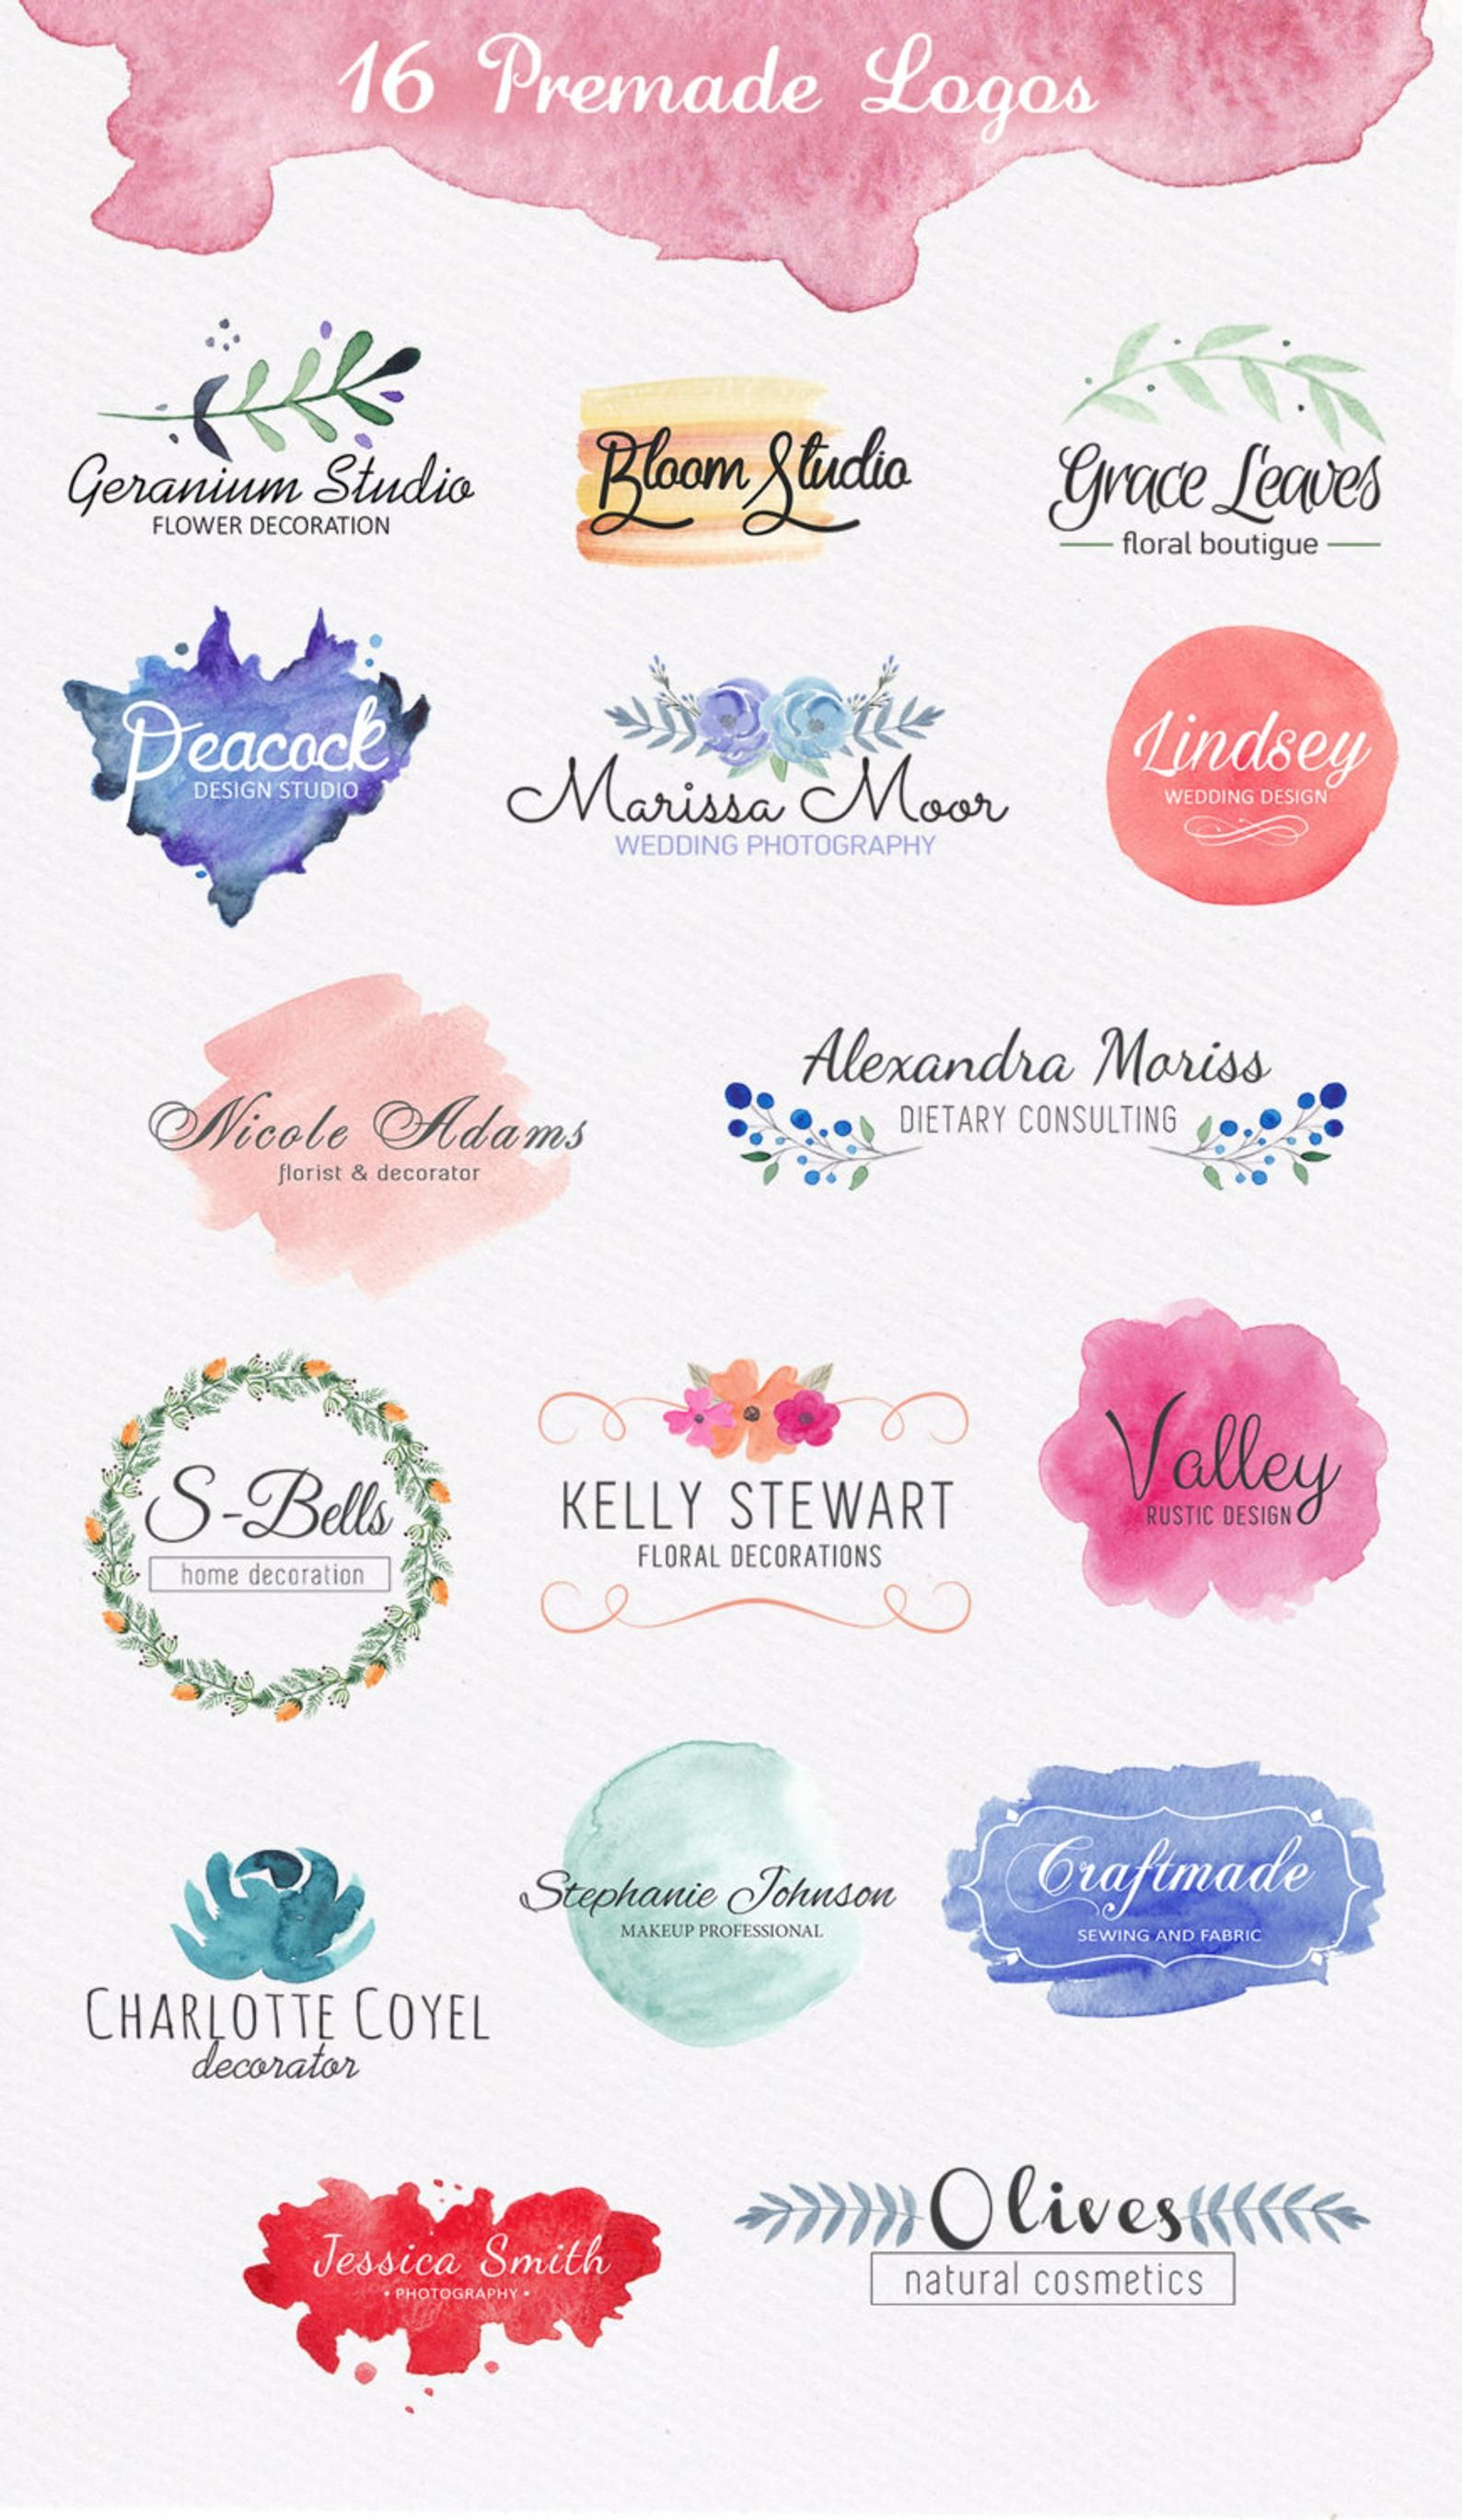 Sale Watercolor Design Kit Logo Templates Watercolor Logo Pack Wedding Design Pack Watercolor Shapes Circles Washes Brand Identity Watercolor Logo Logo Design Free Watercolor Design